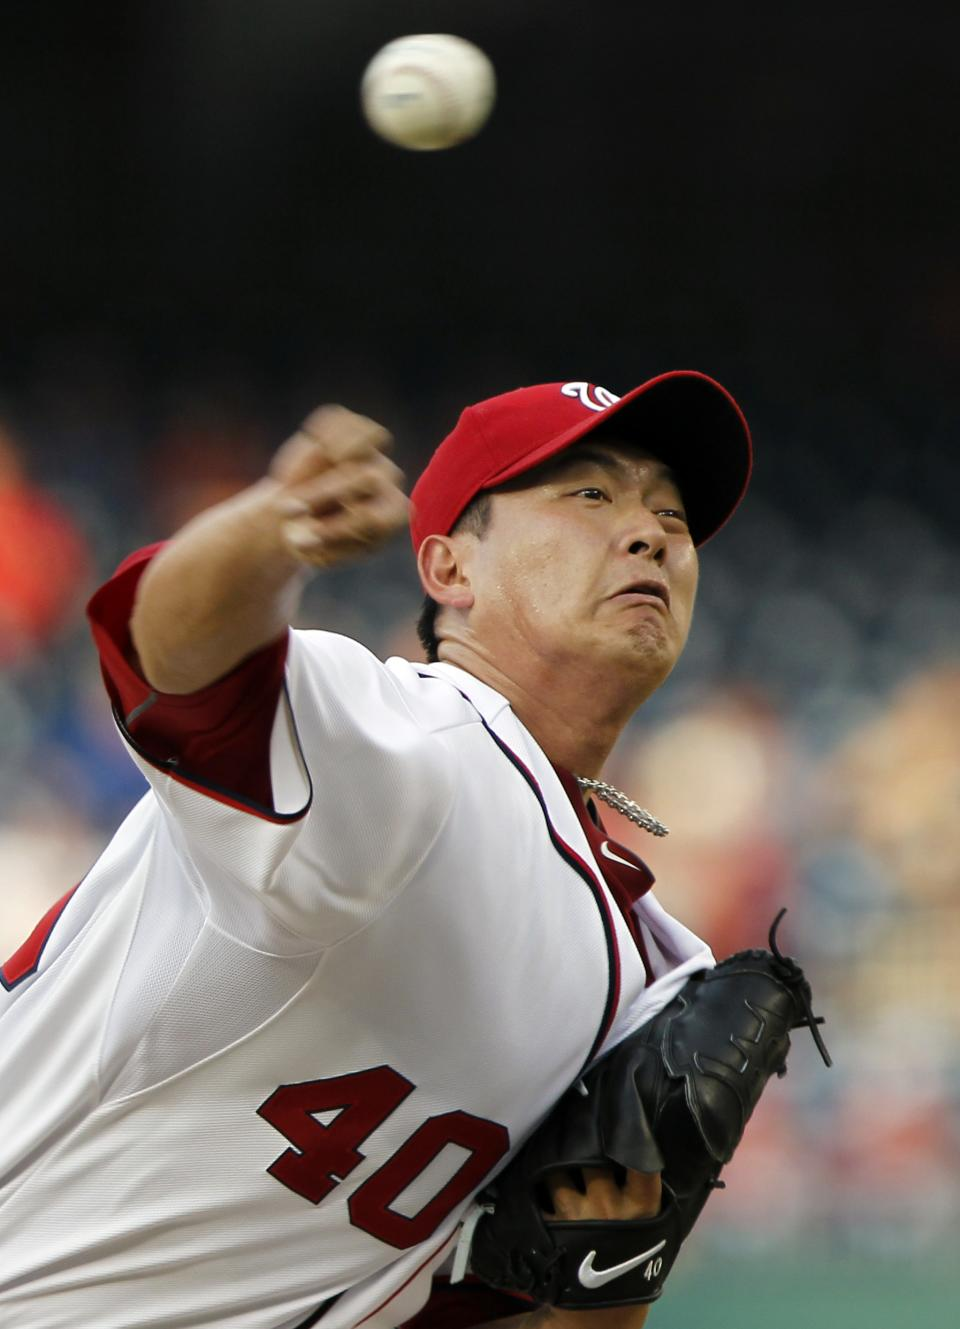 Washington Nationals starting pitcher Chien-Ming Wang throws during the first inning of a baseball game against the Tampa Bay Rays at Nationals Park on Tuesday, June 19, 2012, in Washington. (AP Photo/Alex Brandon)